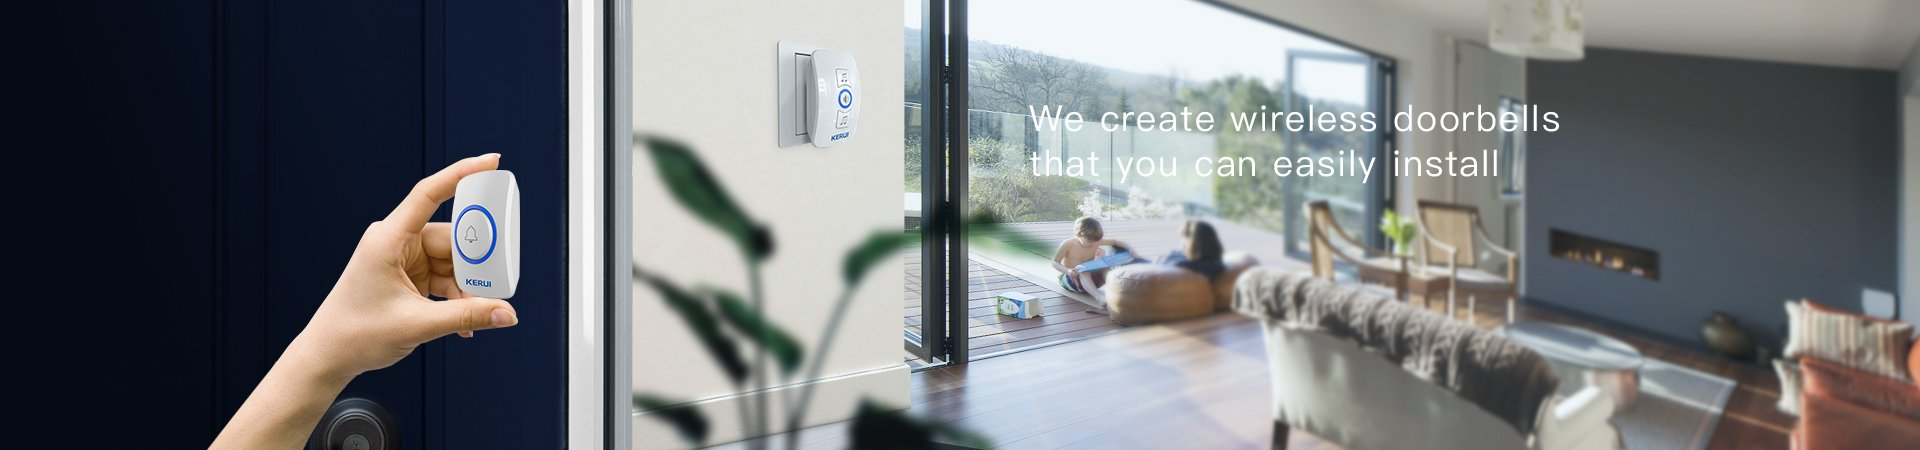 We create wireless doorbells that you can easily install